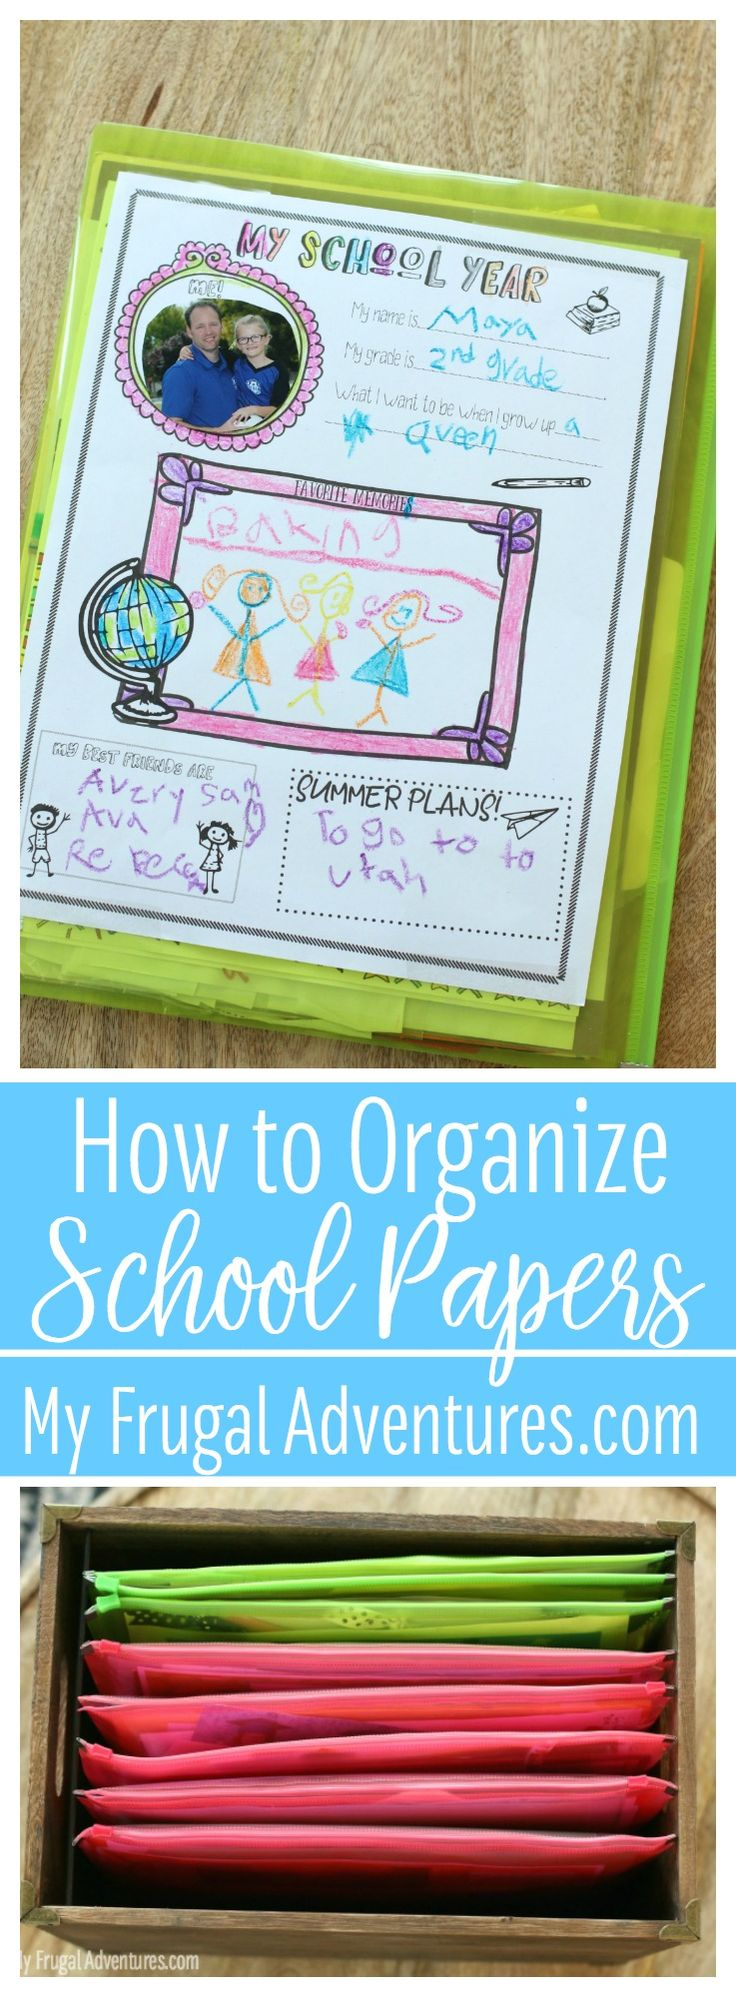 How to Organize School Papers- free printable memory sheet